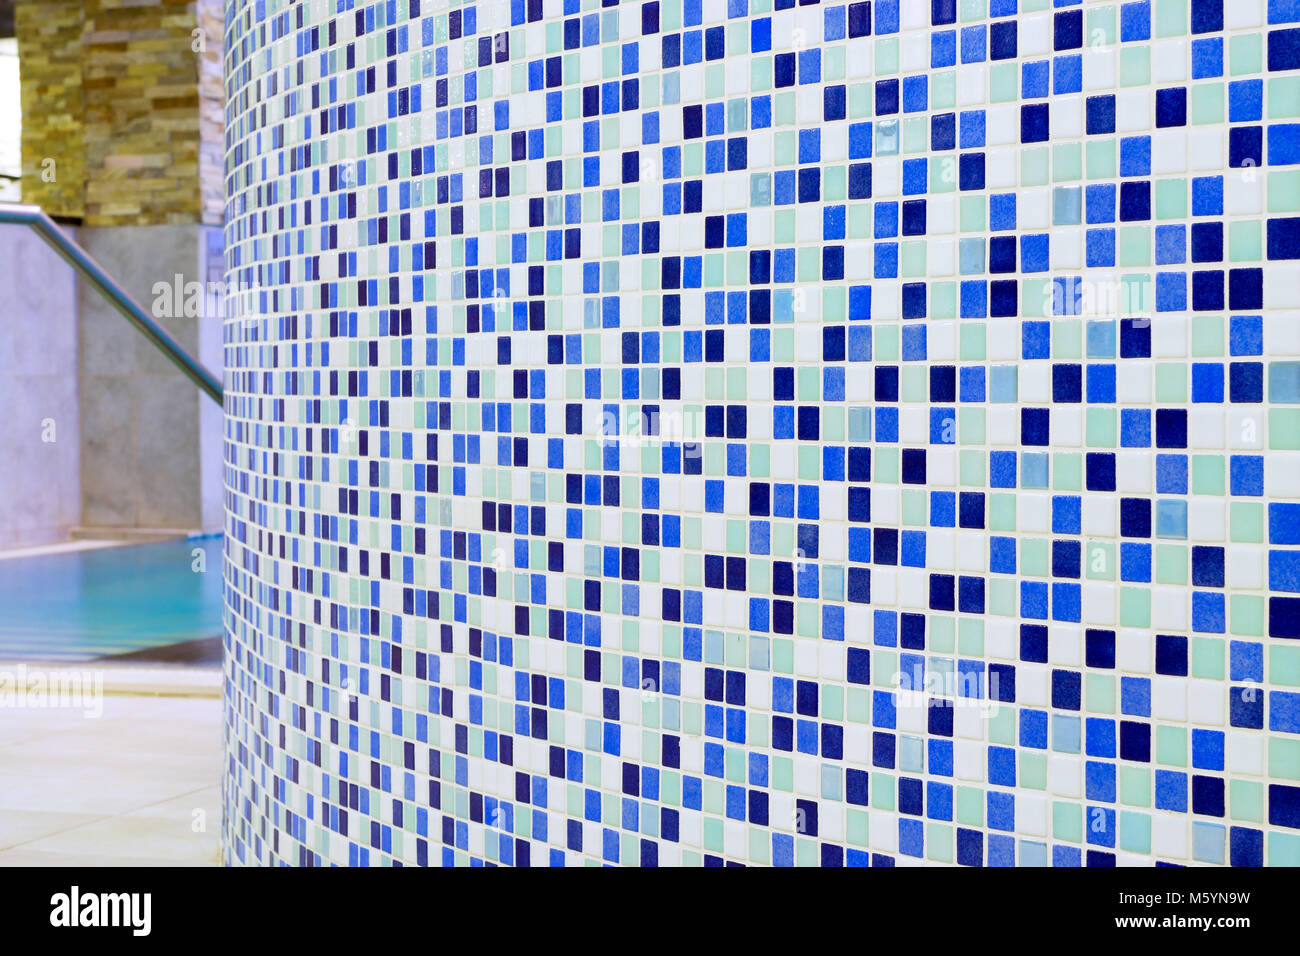 Checkered tile background pattern. Architectural mosaic detail Stock ...